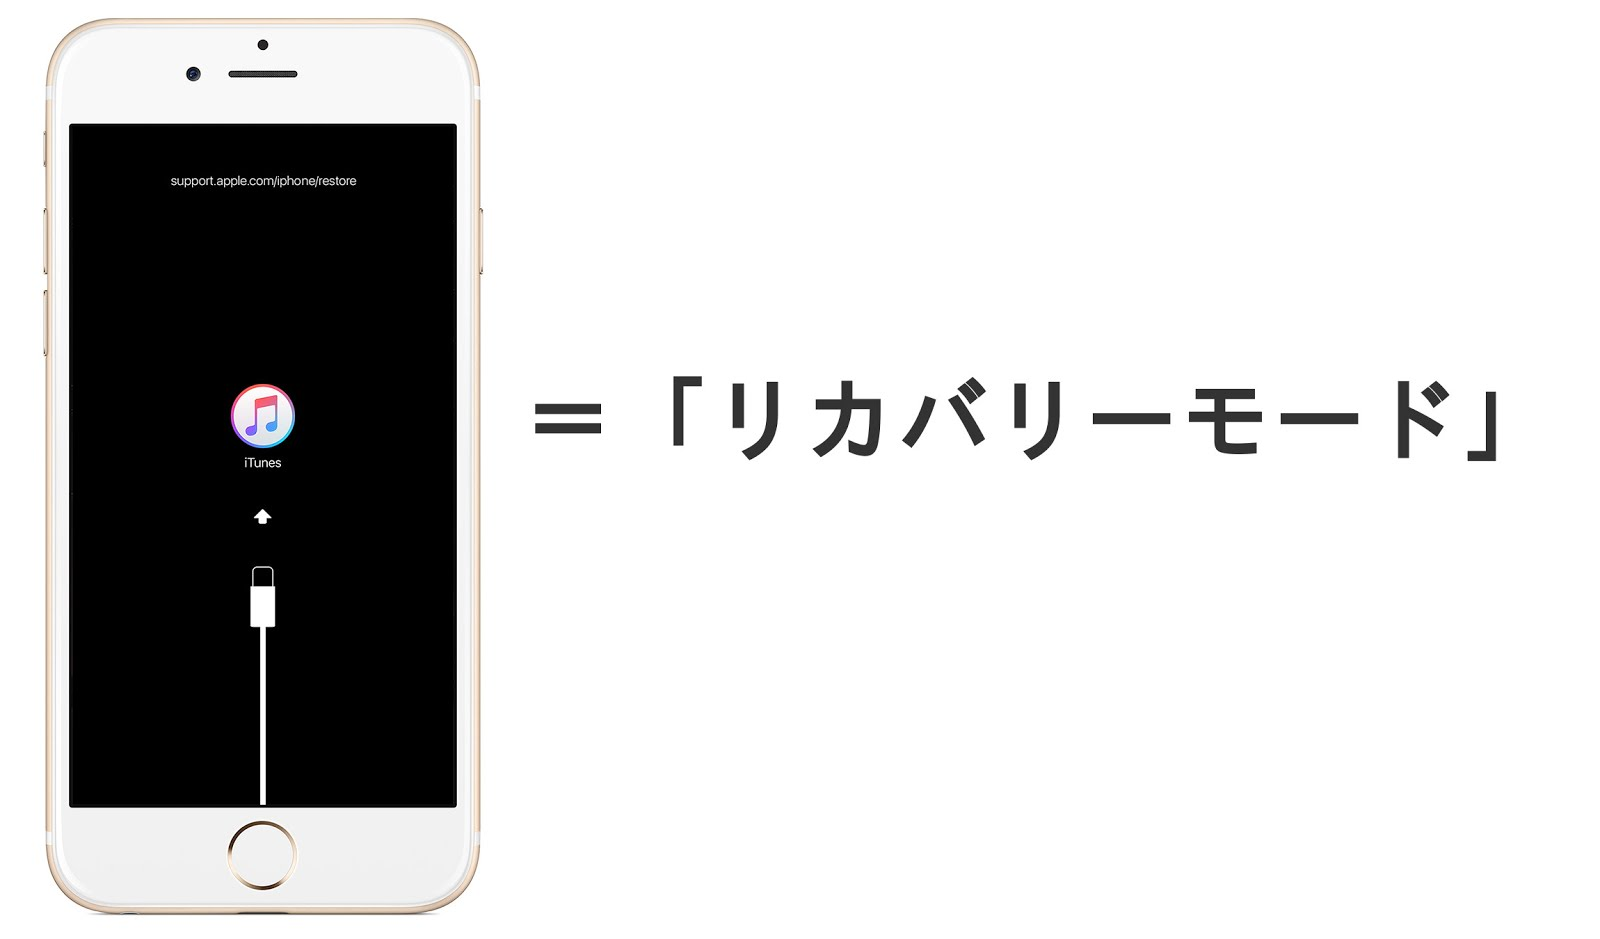 apple iphone restore iphoneで quot support apple iphone restore quot と画面に表示され iosの 4593